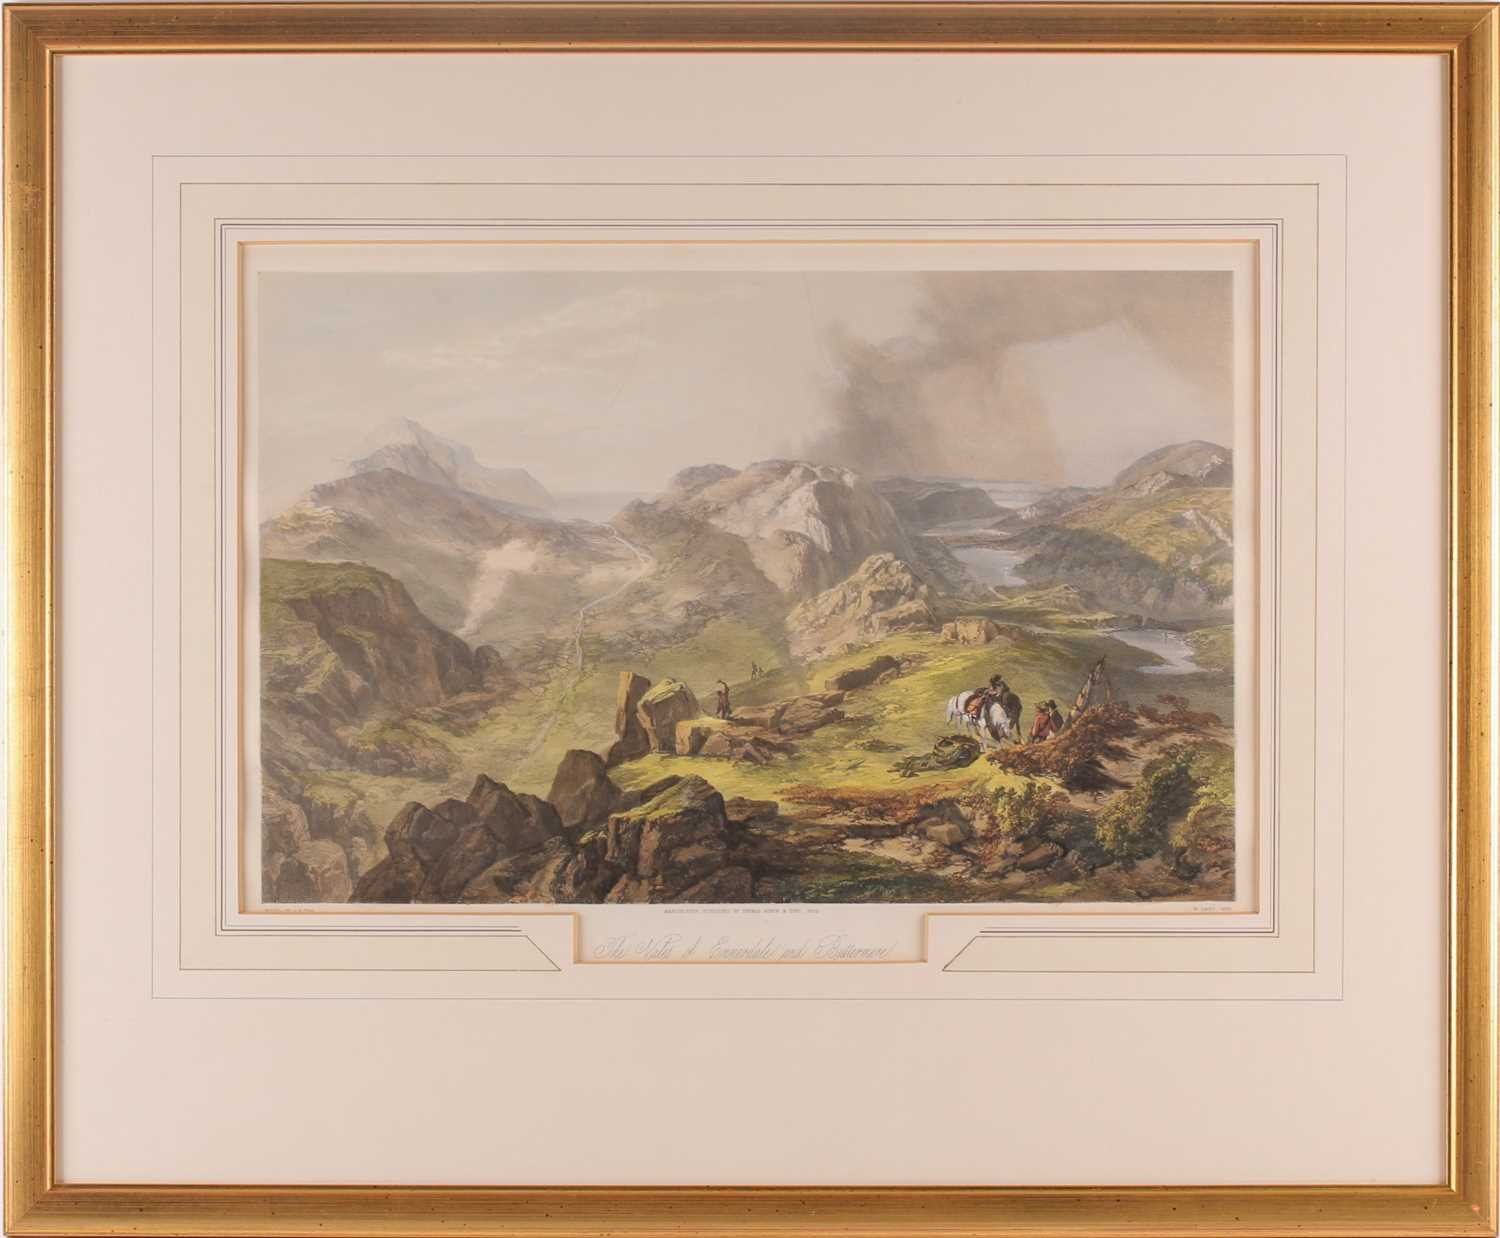 Gauci after J B Pyne, Skiddaw, Buttermere, The Vales of Emmerdale and Buttermere, The Rydal Water, - Image 4 of 13